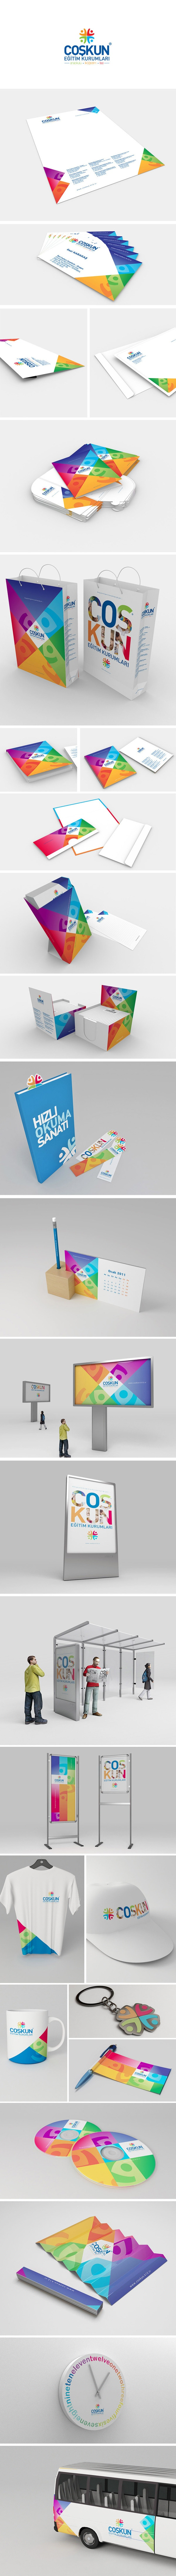 Coskun College / Corporate Identity by yakup akdemir, via Behance